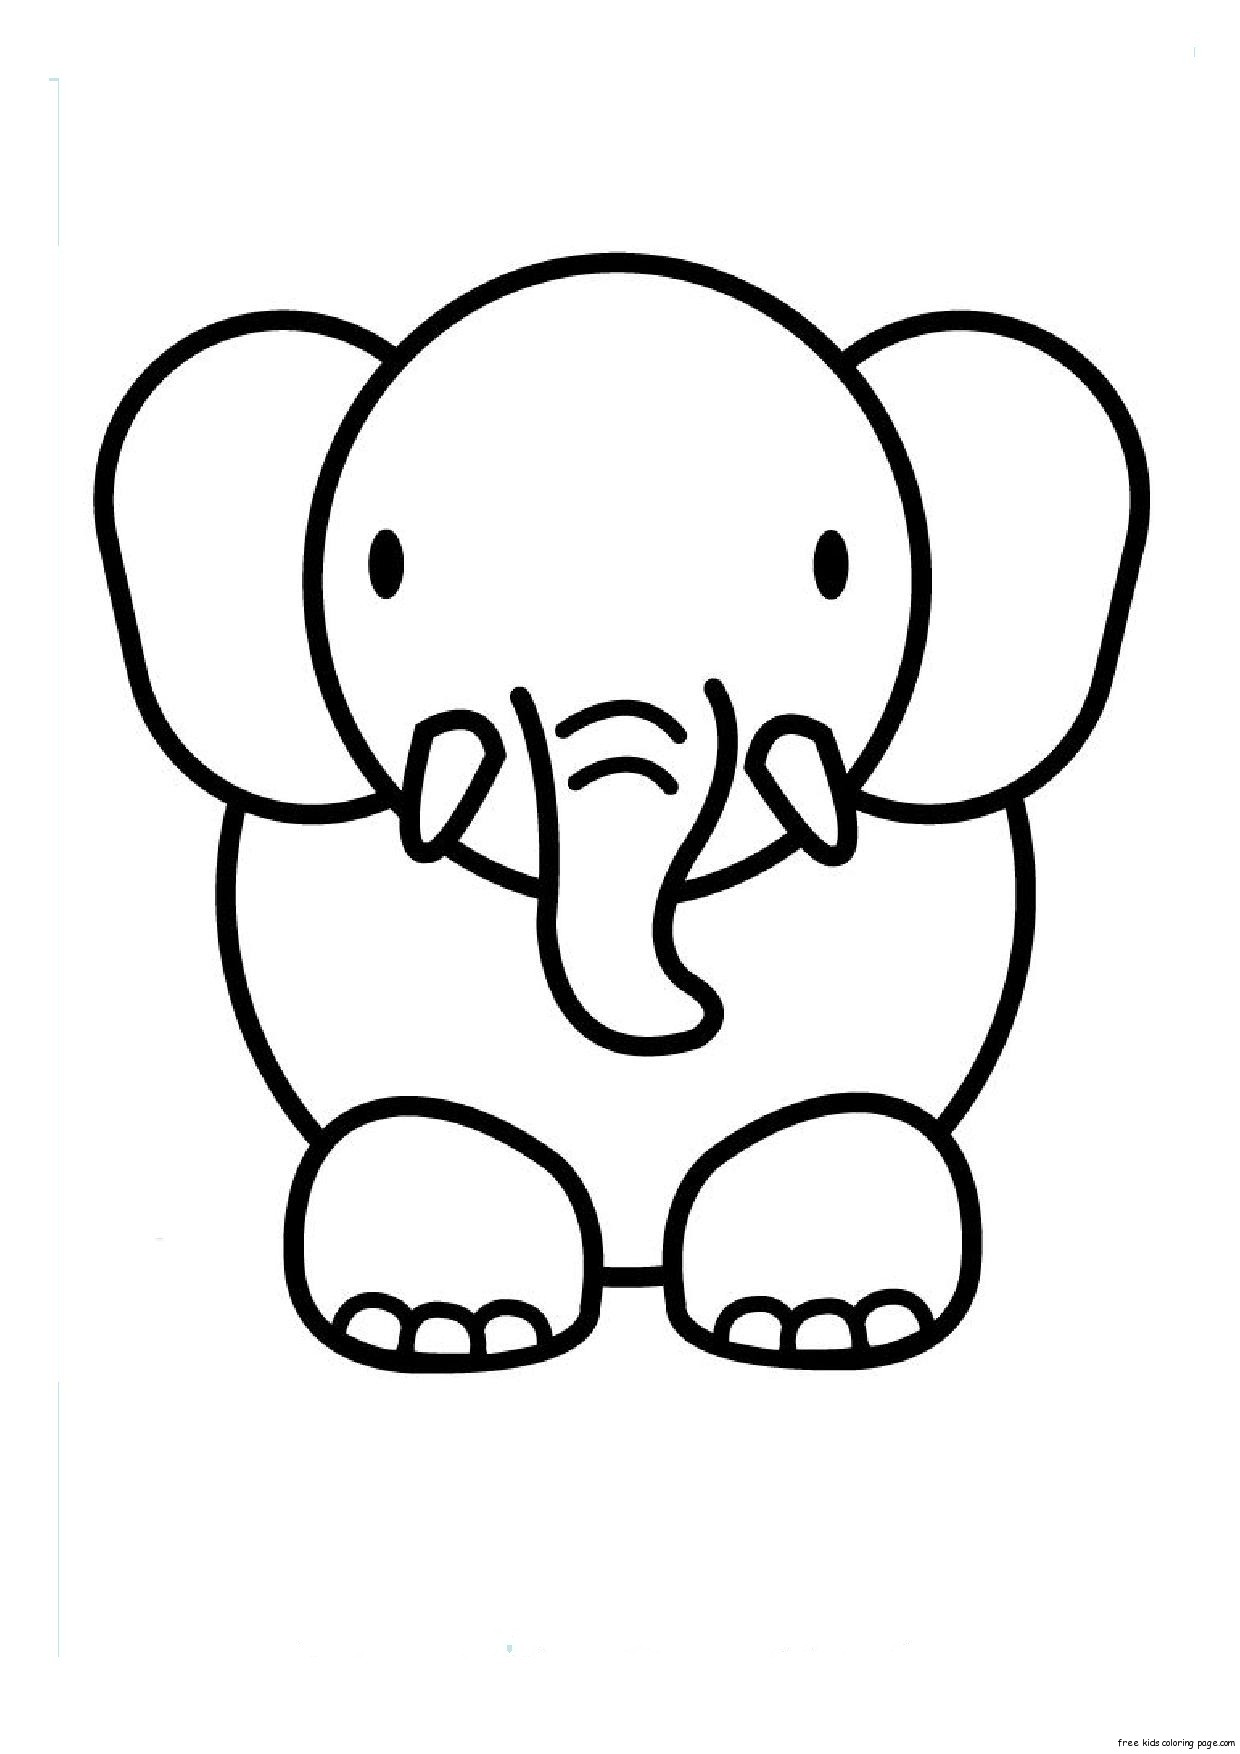 Free Elephant Images For Kids Download Free Clip Art